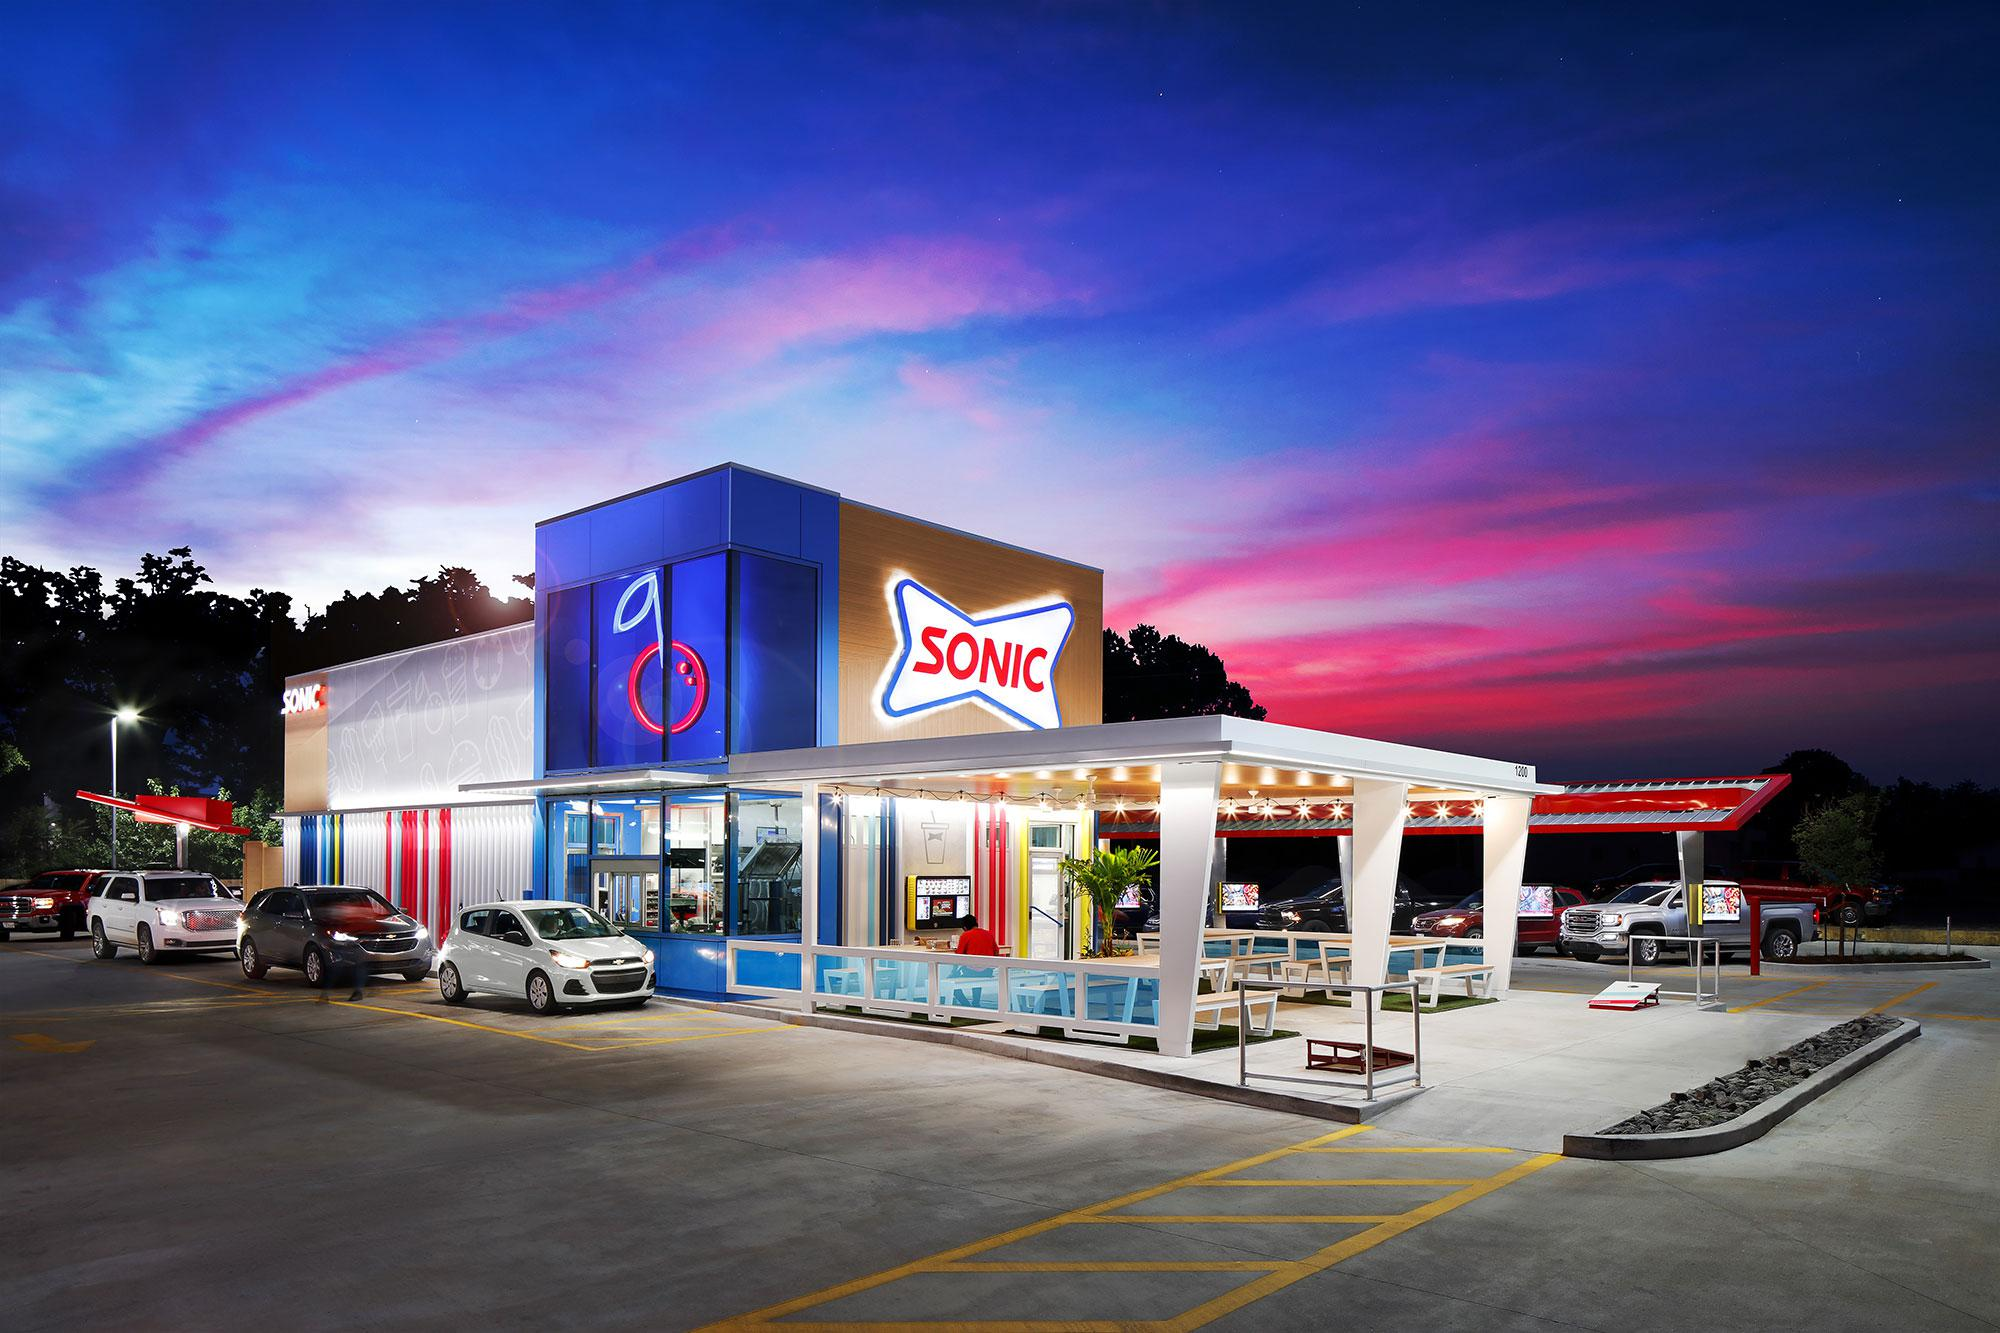 Sonic's app saw new users more than double each week during the pandemic's spring peak, helping the chain became one of industry's the best performers.